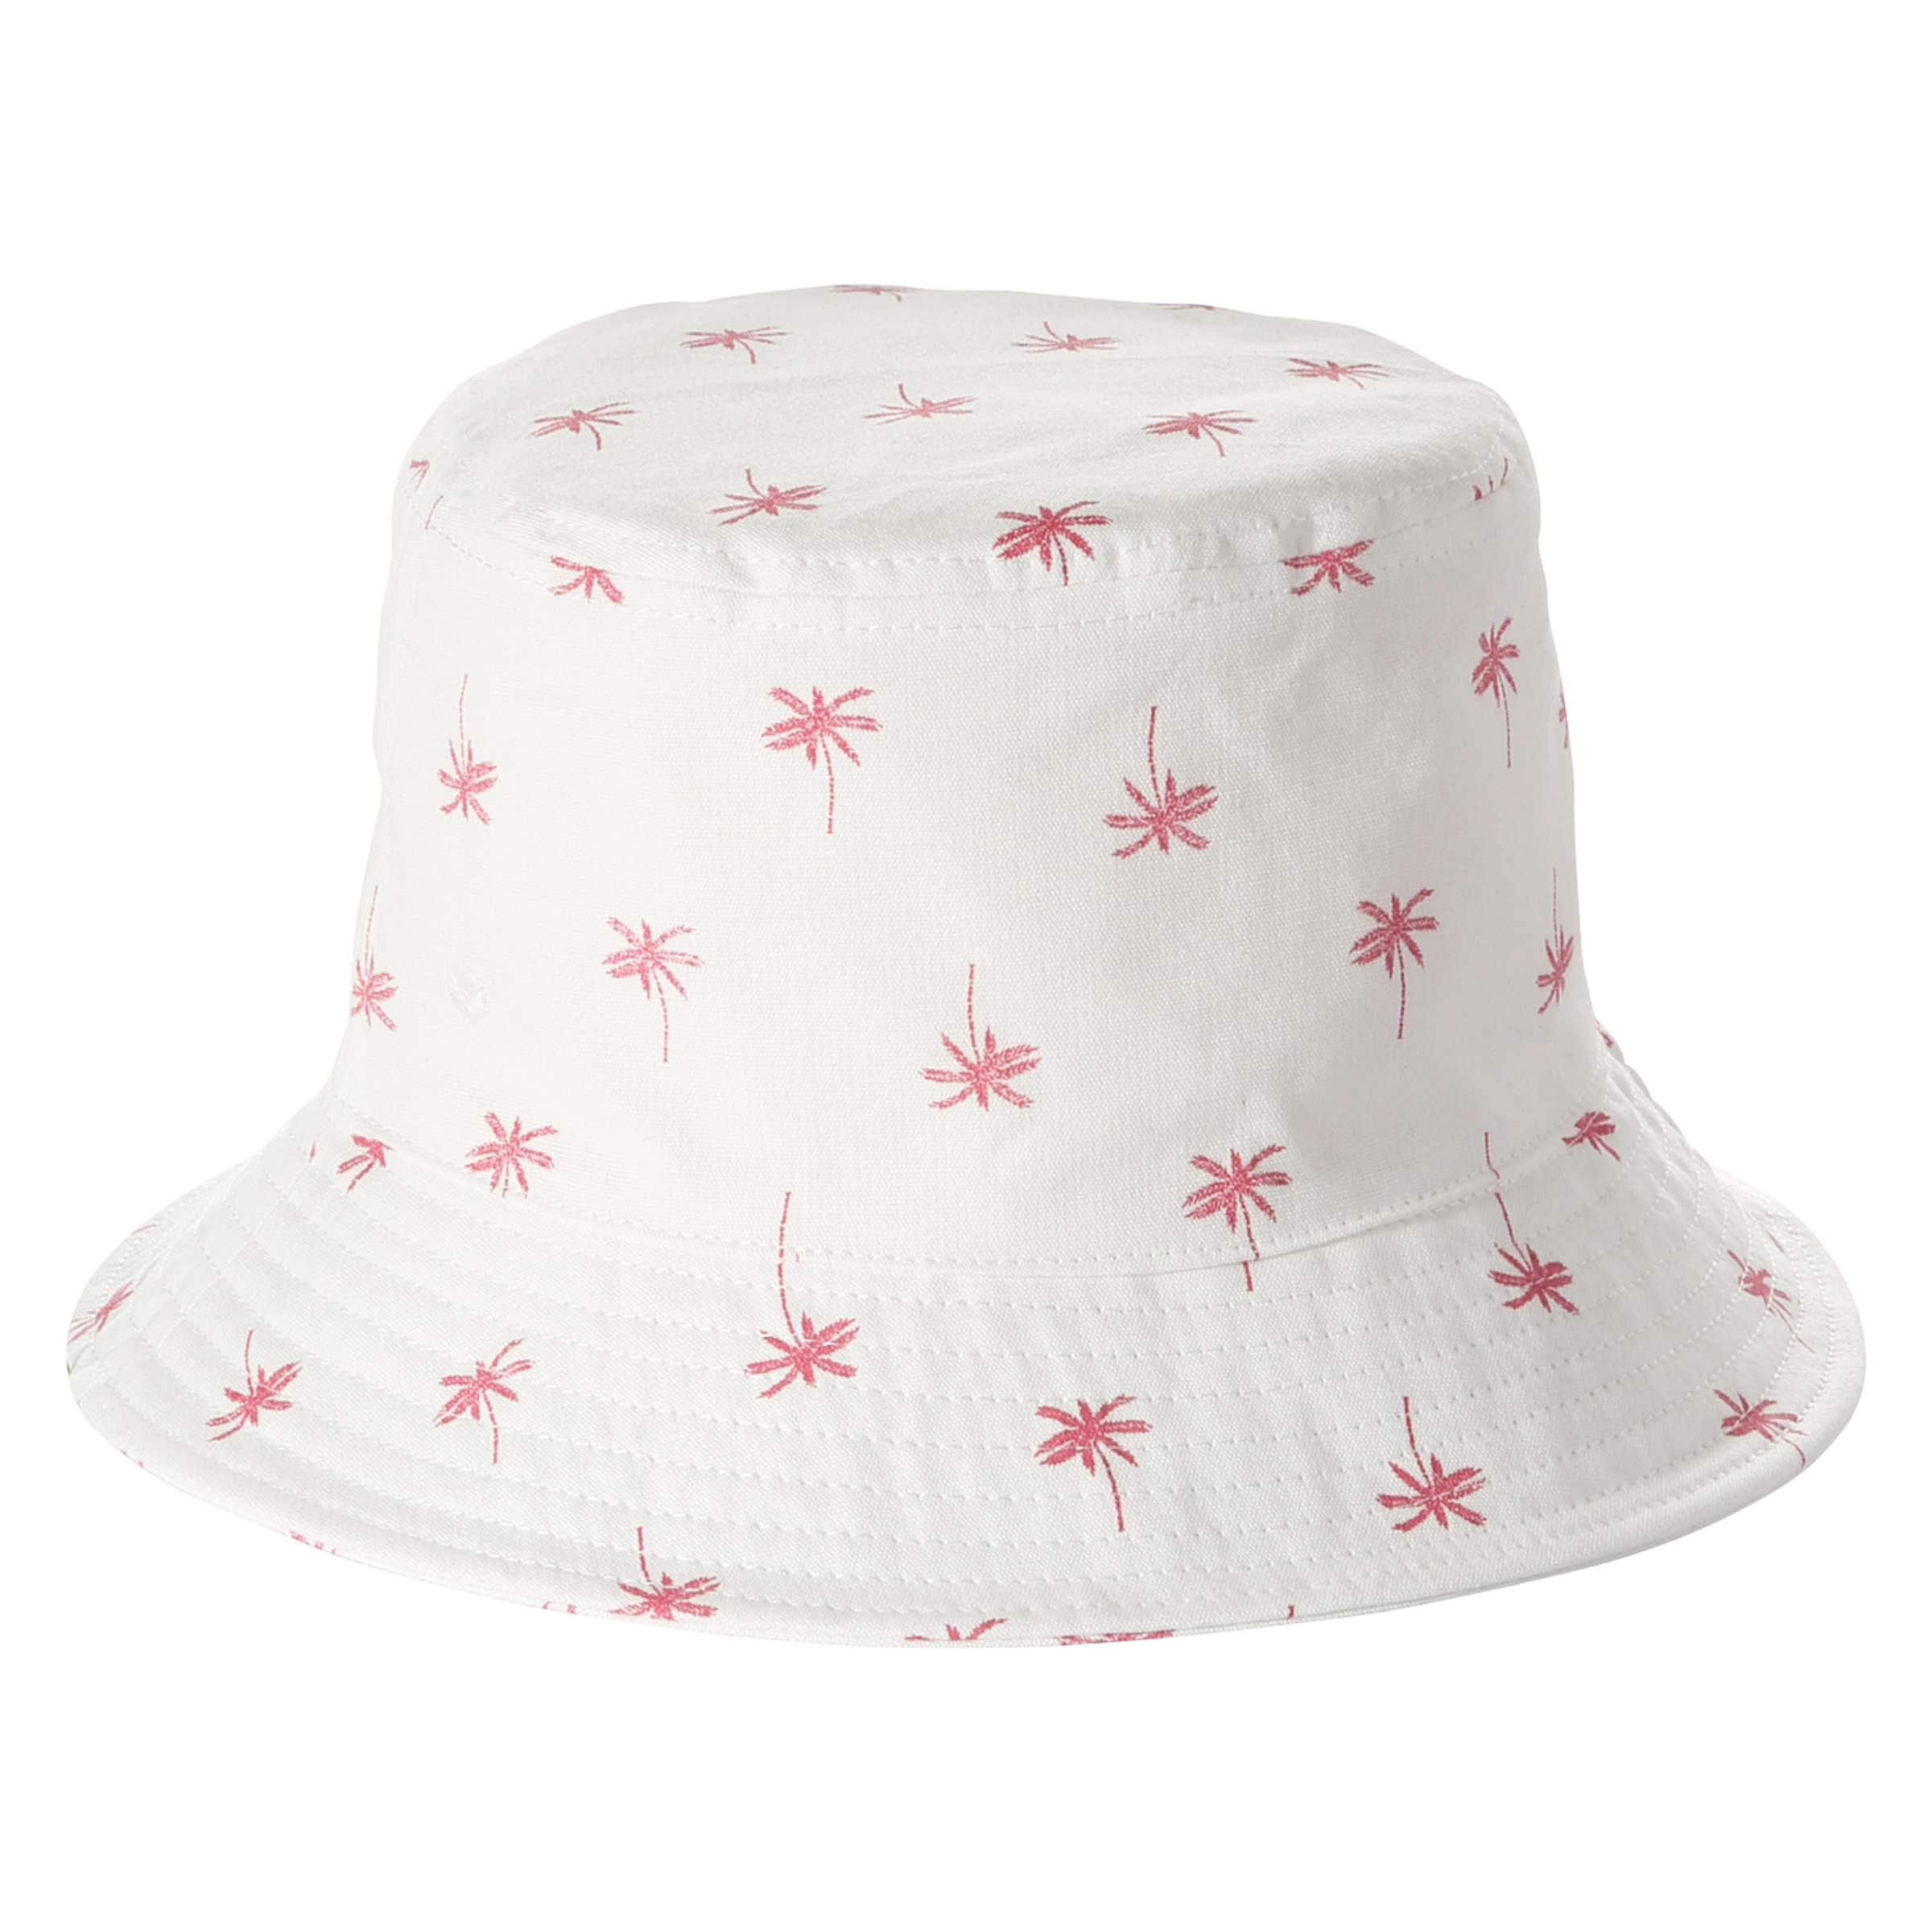 Palm Tree Print Bucket Hat in Off White from Joe Fresh ee849a90d0cc